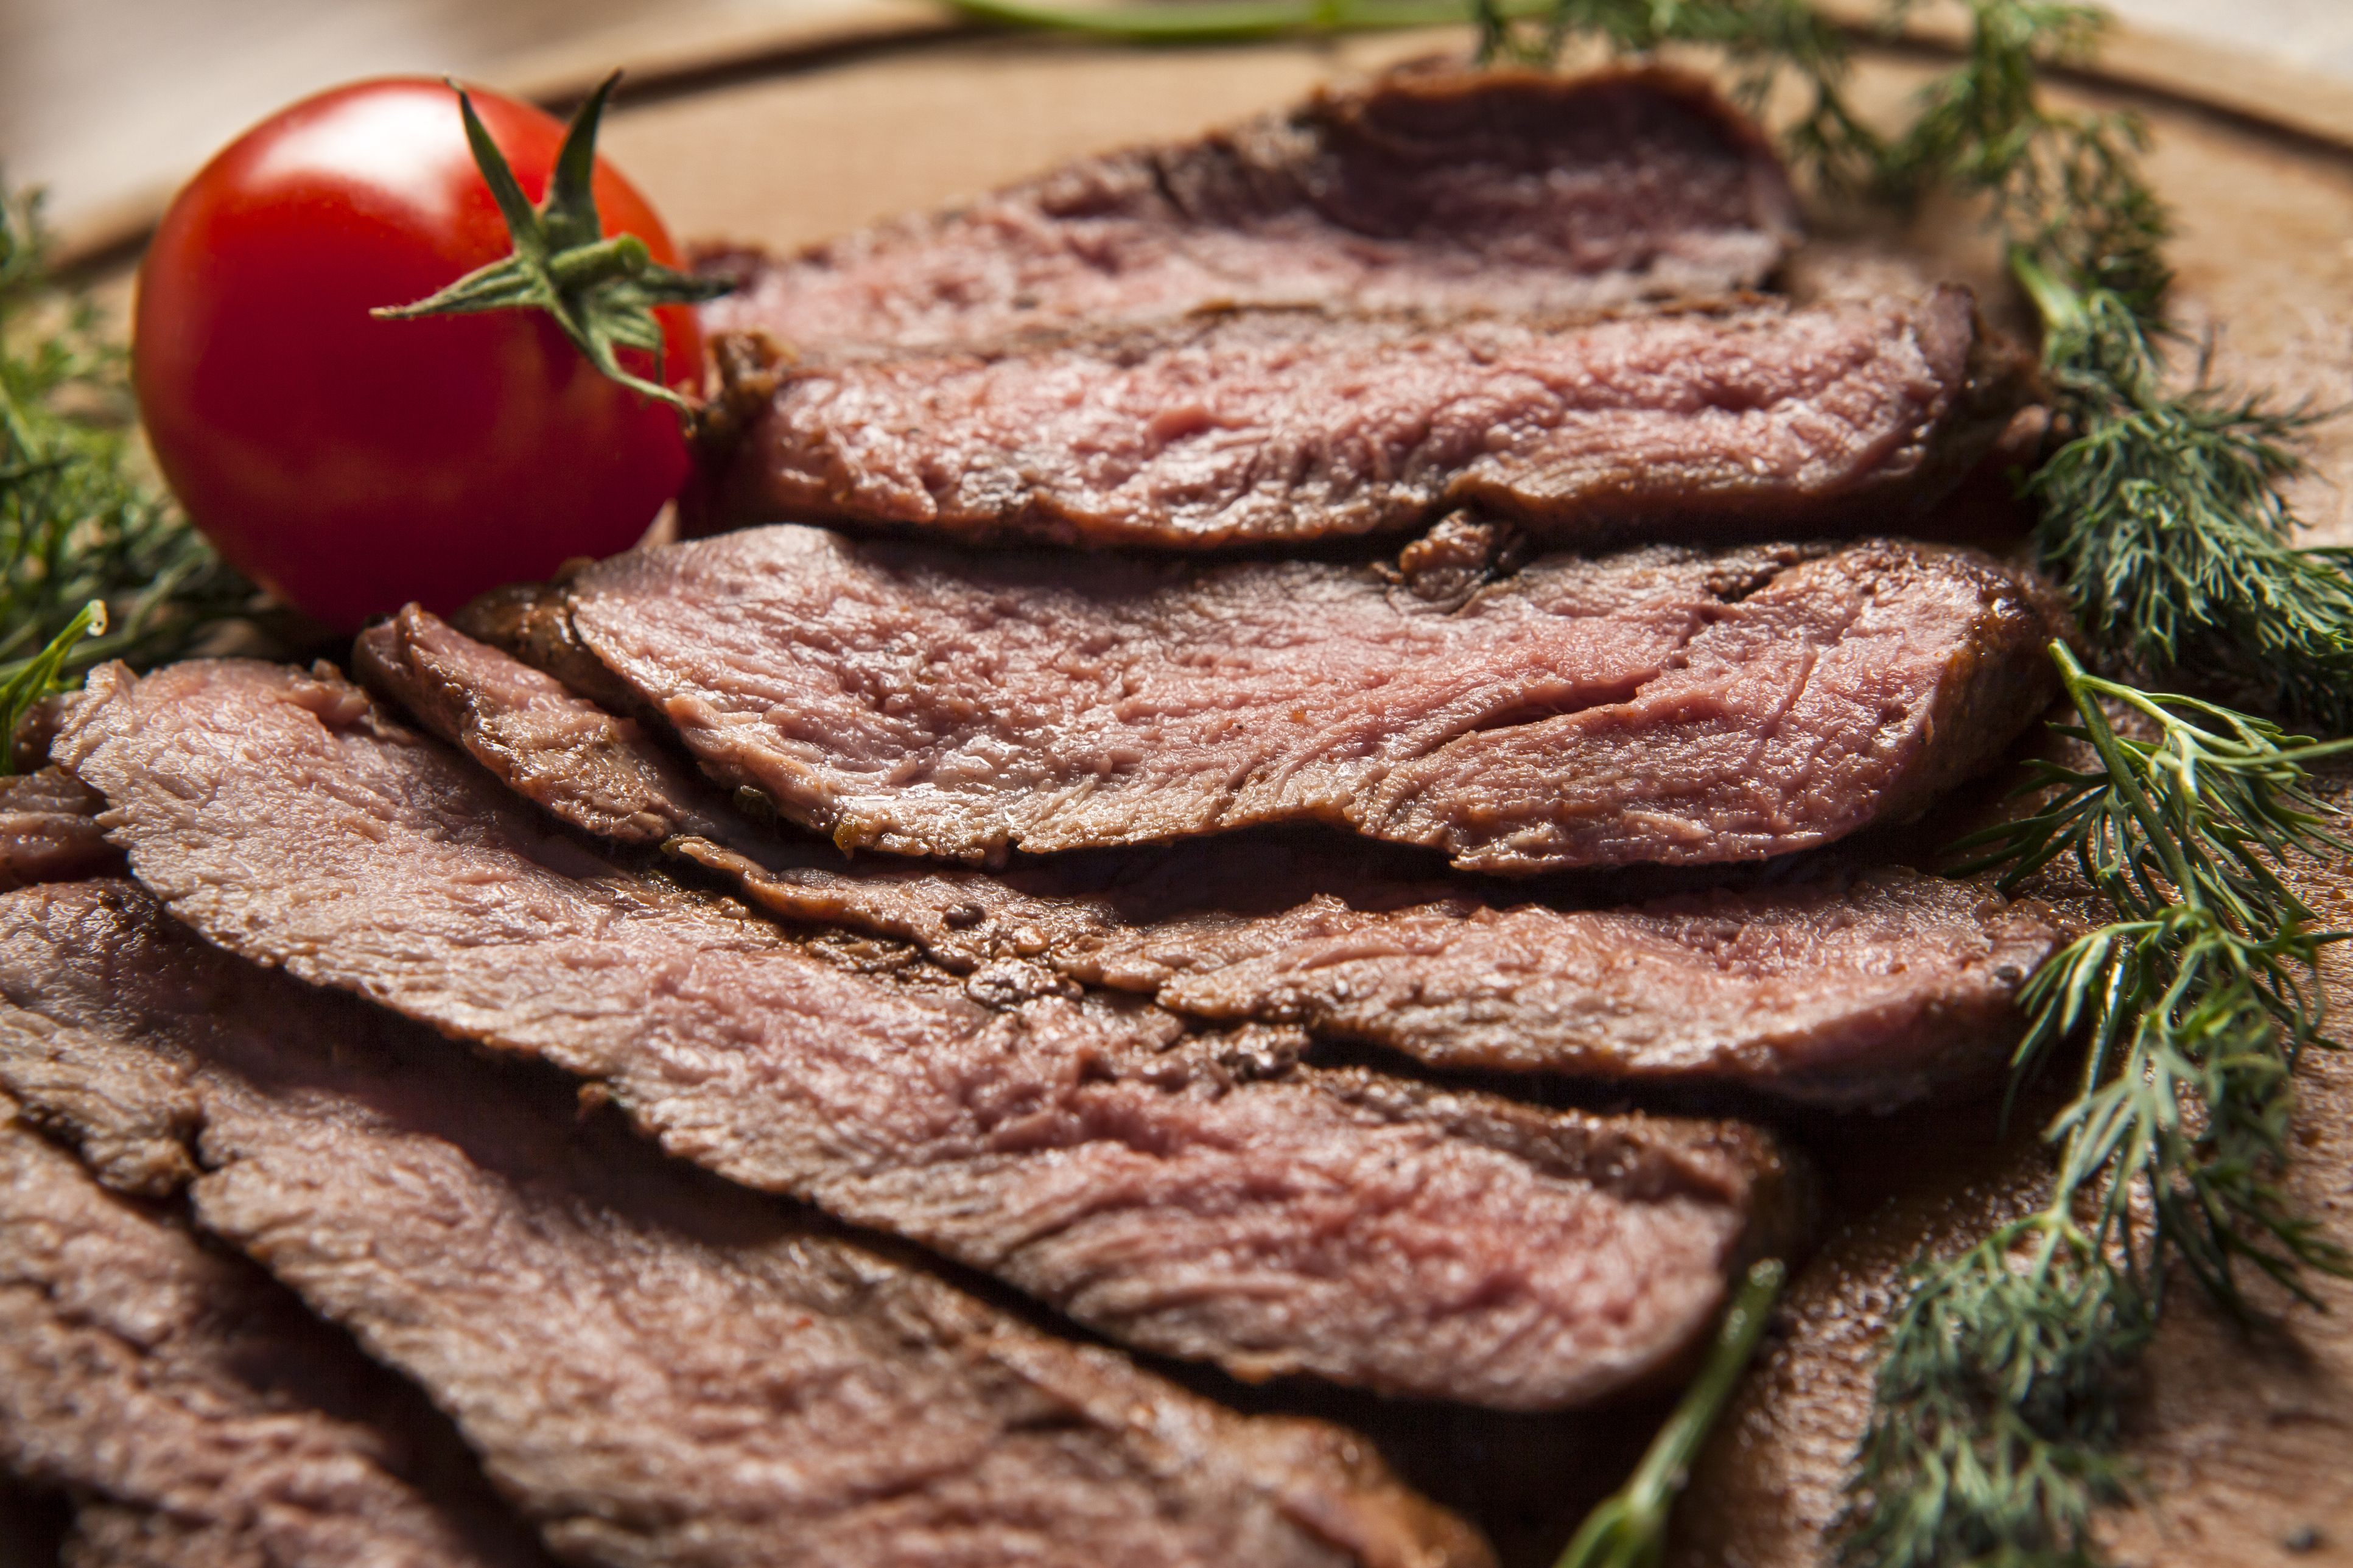 This thick broiled top round steak makes a delicious meal with baked potatoes and your favorite steamed vegetables.